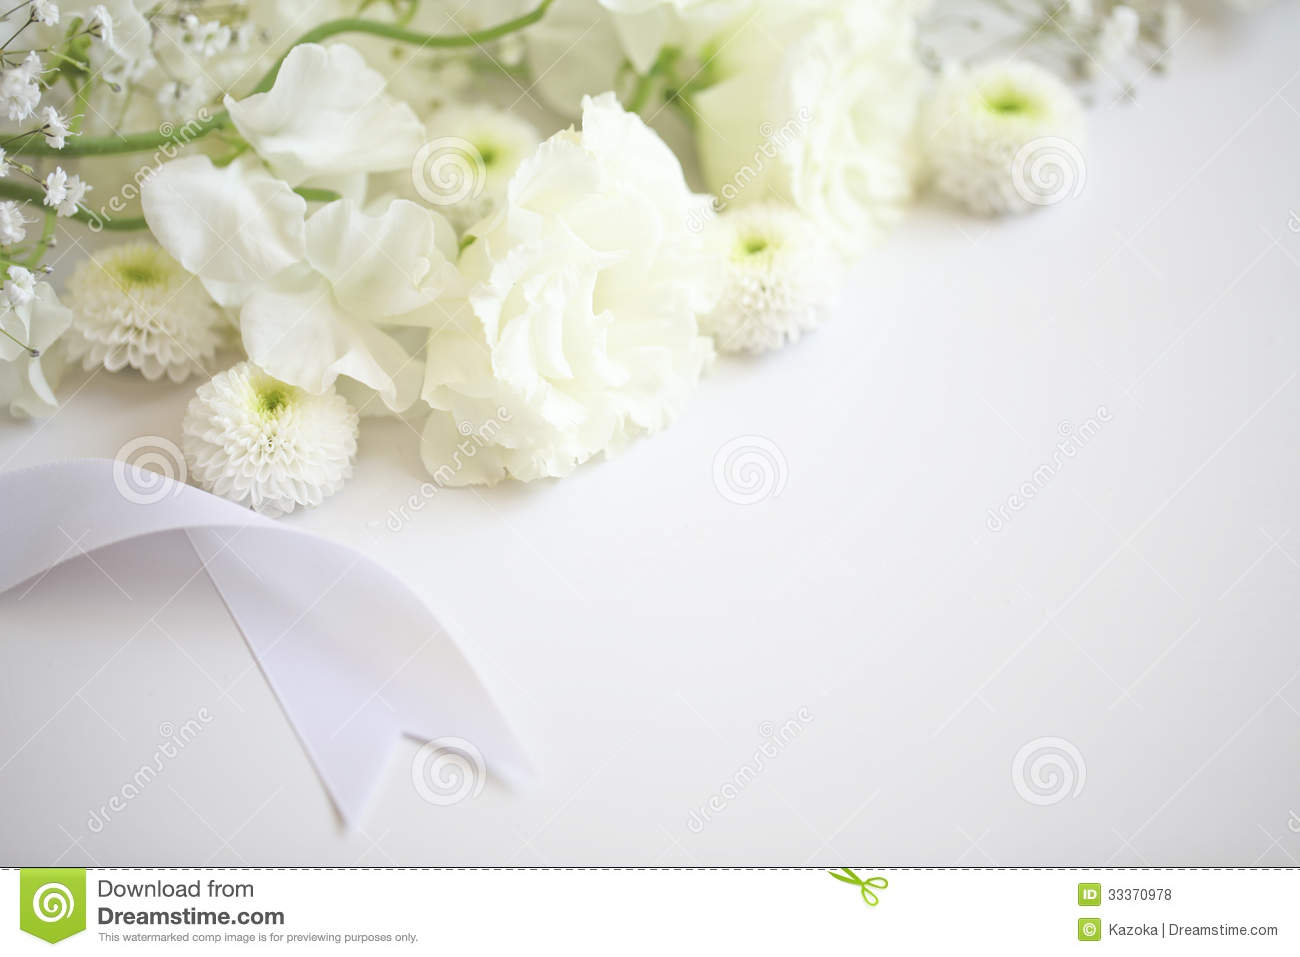 Funeral Background Pictures 1300x957